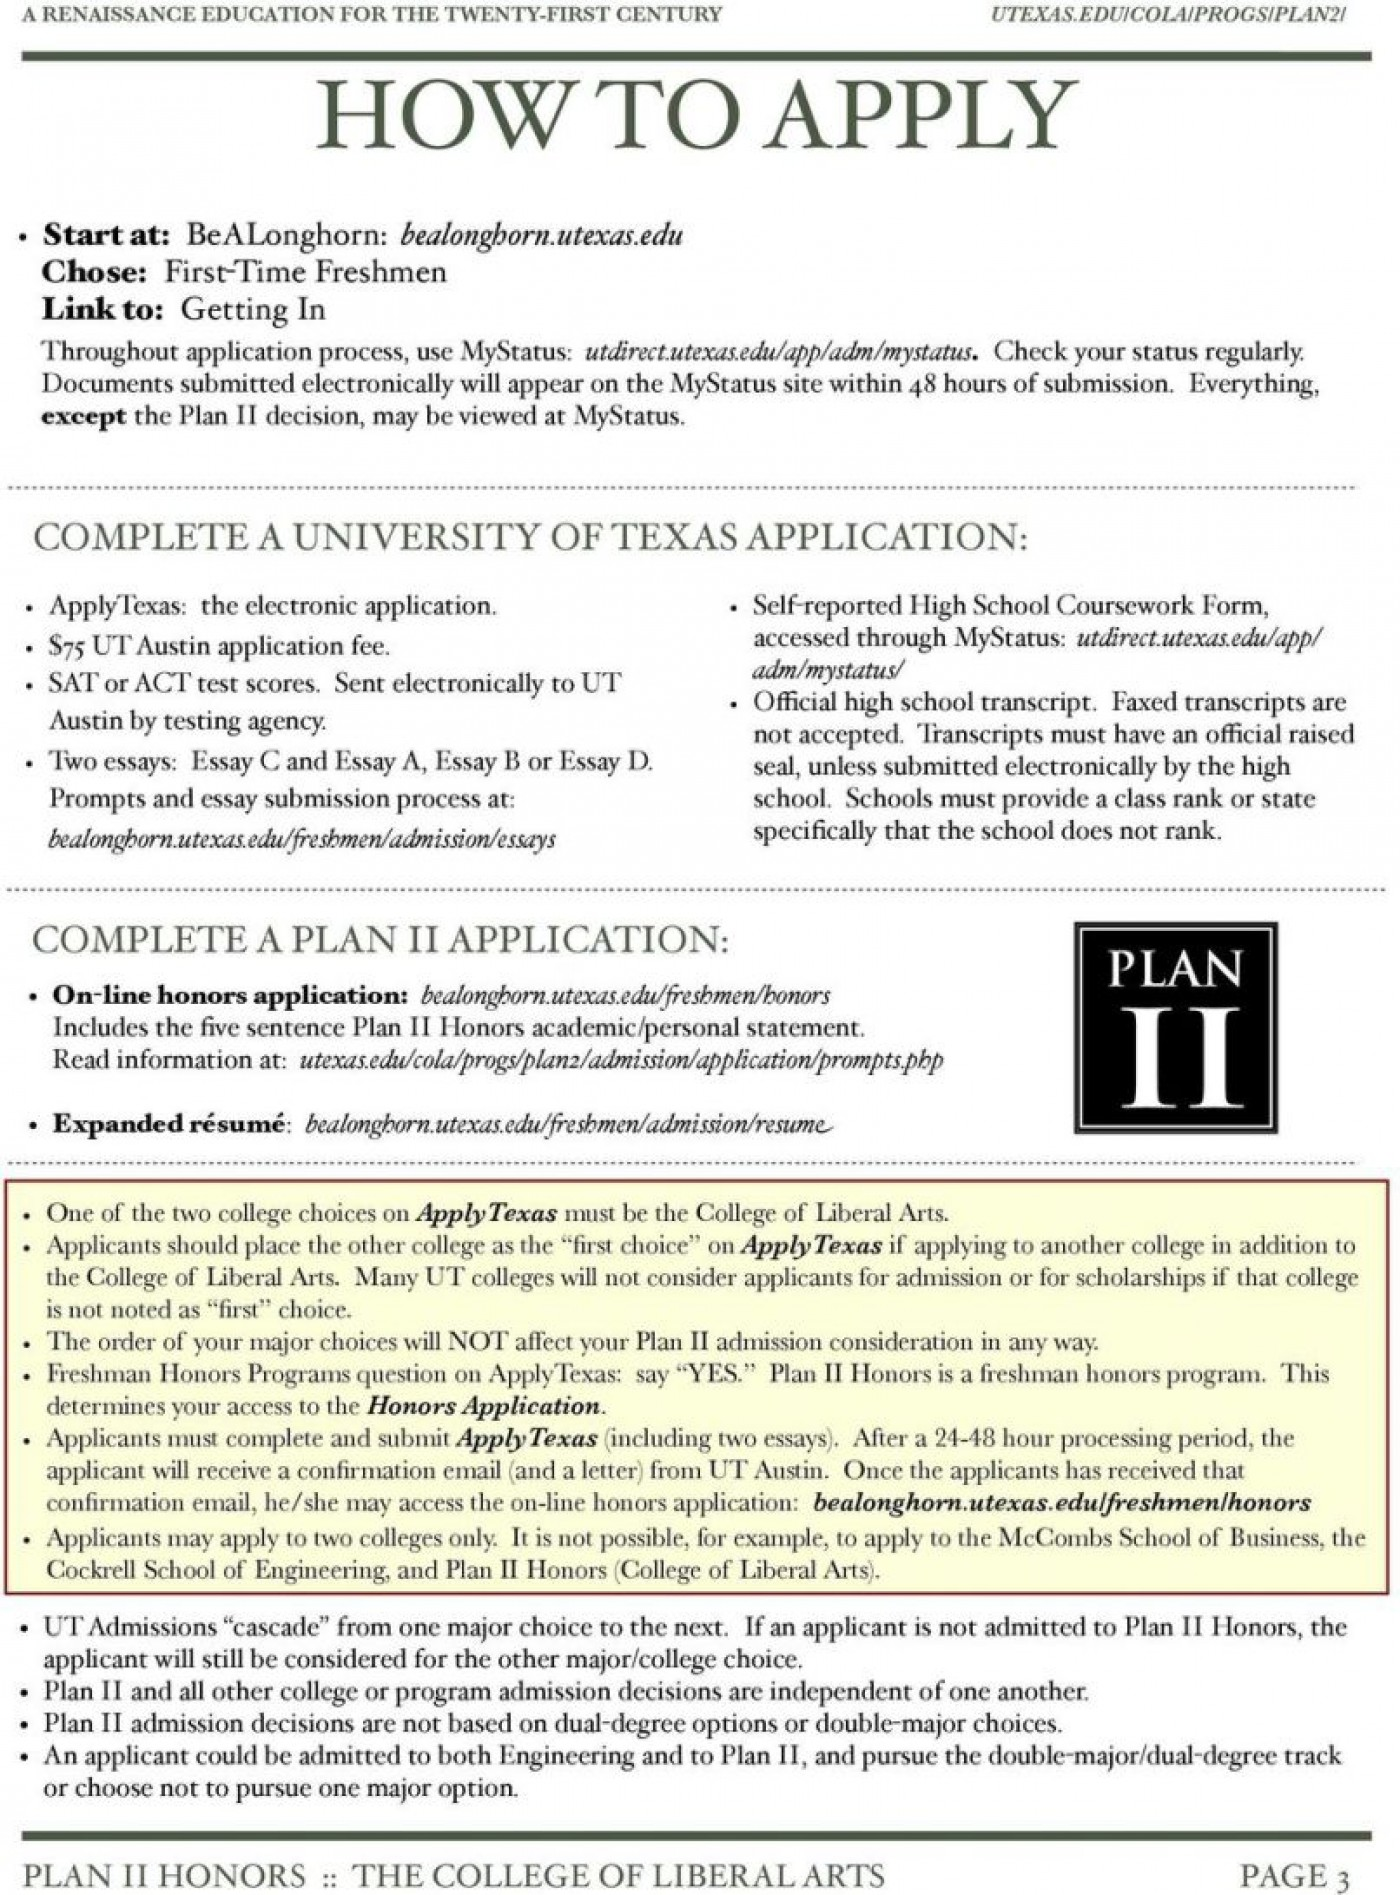 005 Essay Example Applytexas Prompts Poemdoc Or Apply Texas Topic Examples P Striking C Prompt 1400